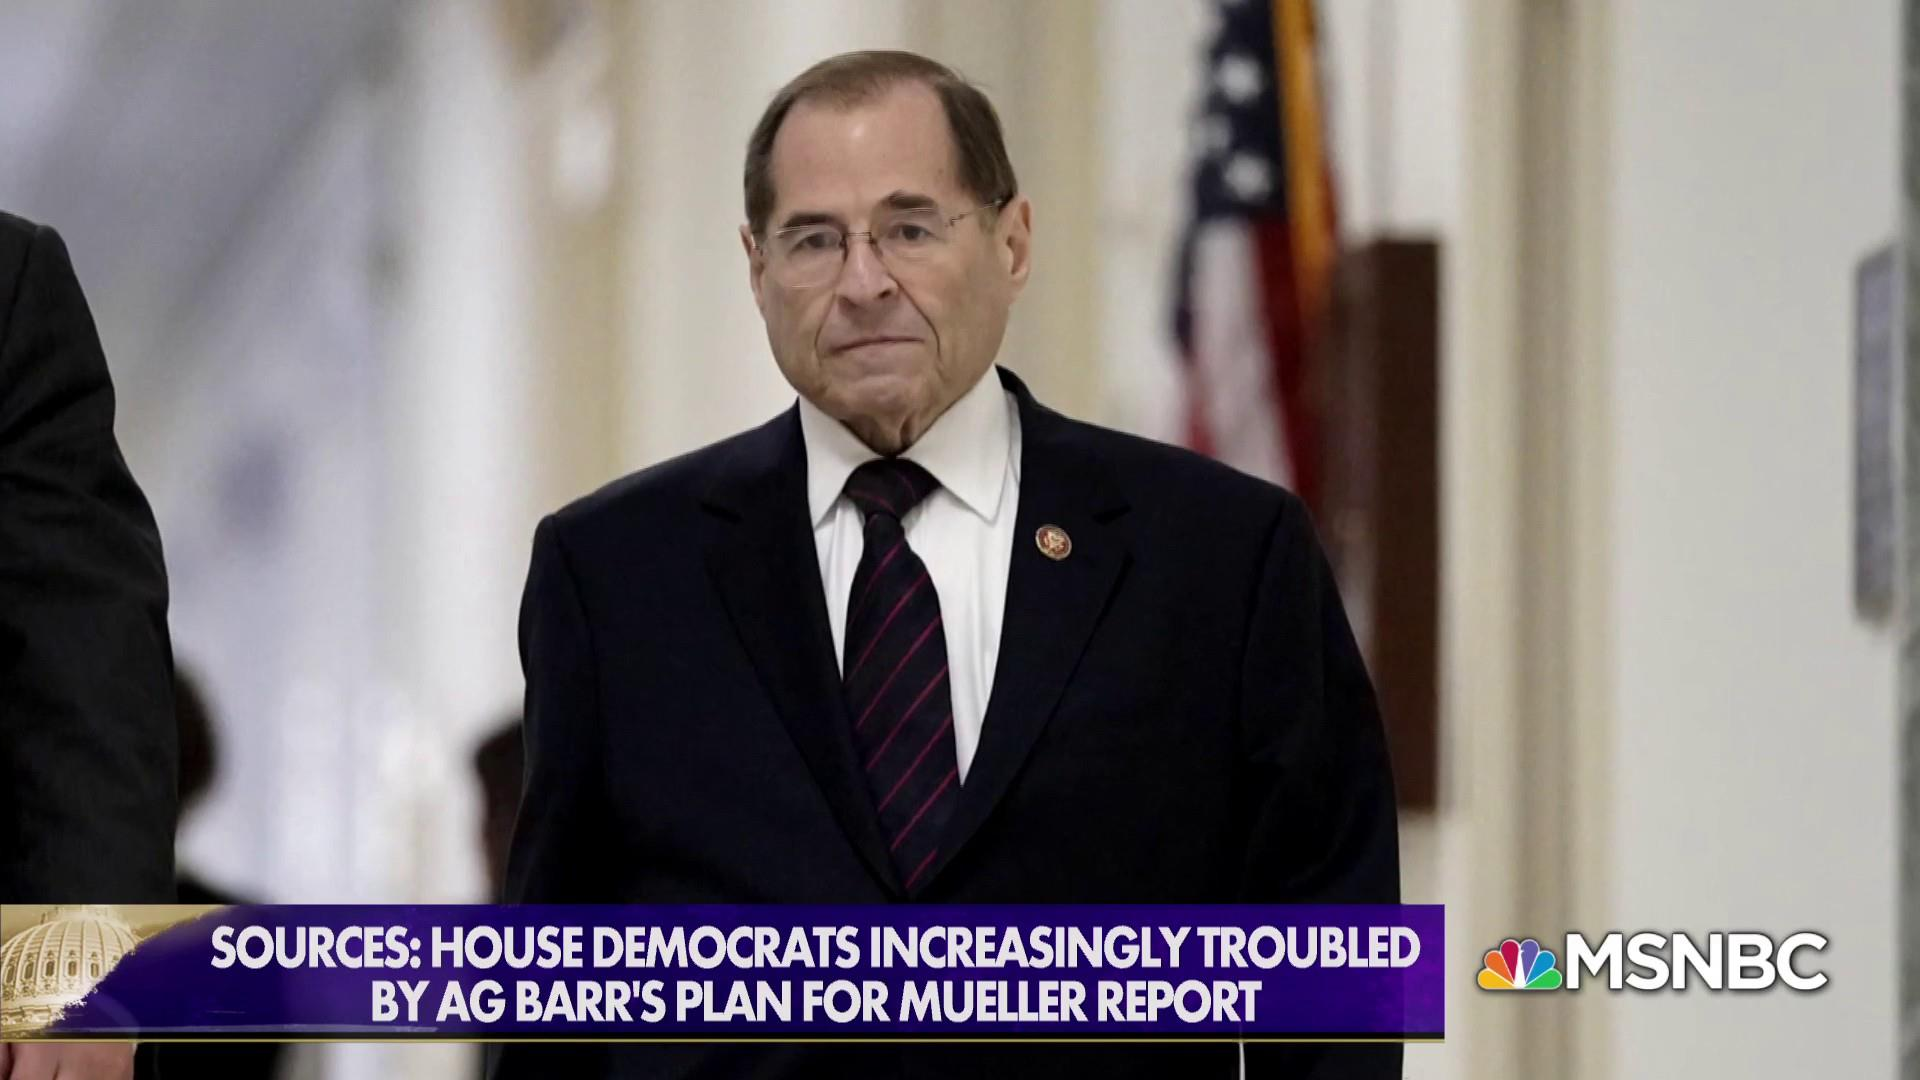 Rep. Quigley: Barr was hired 'to shut the investigation down'